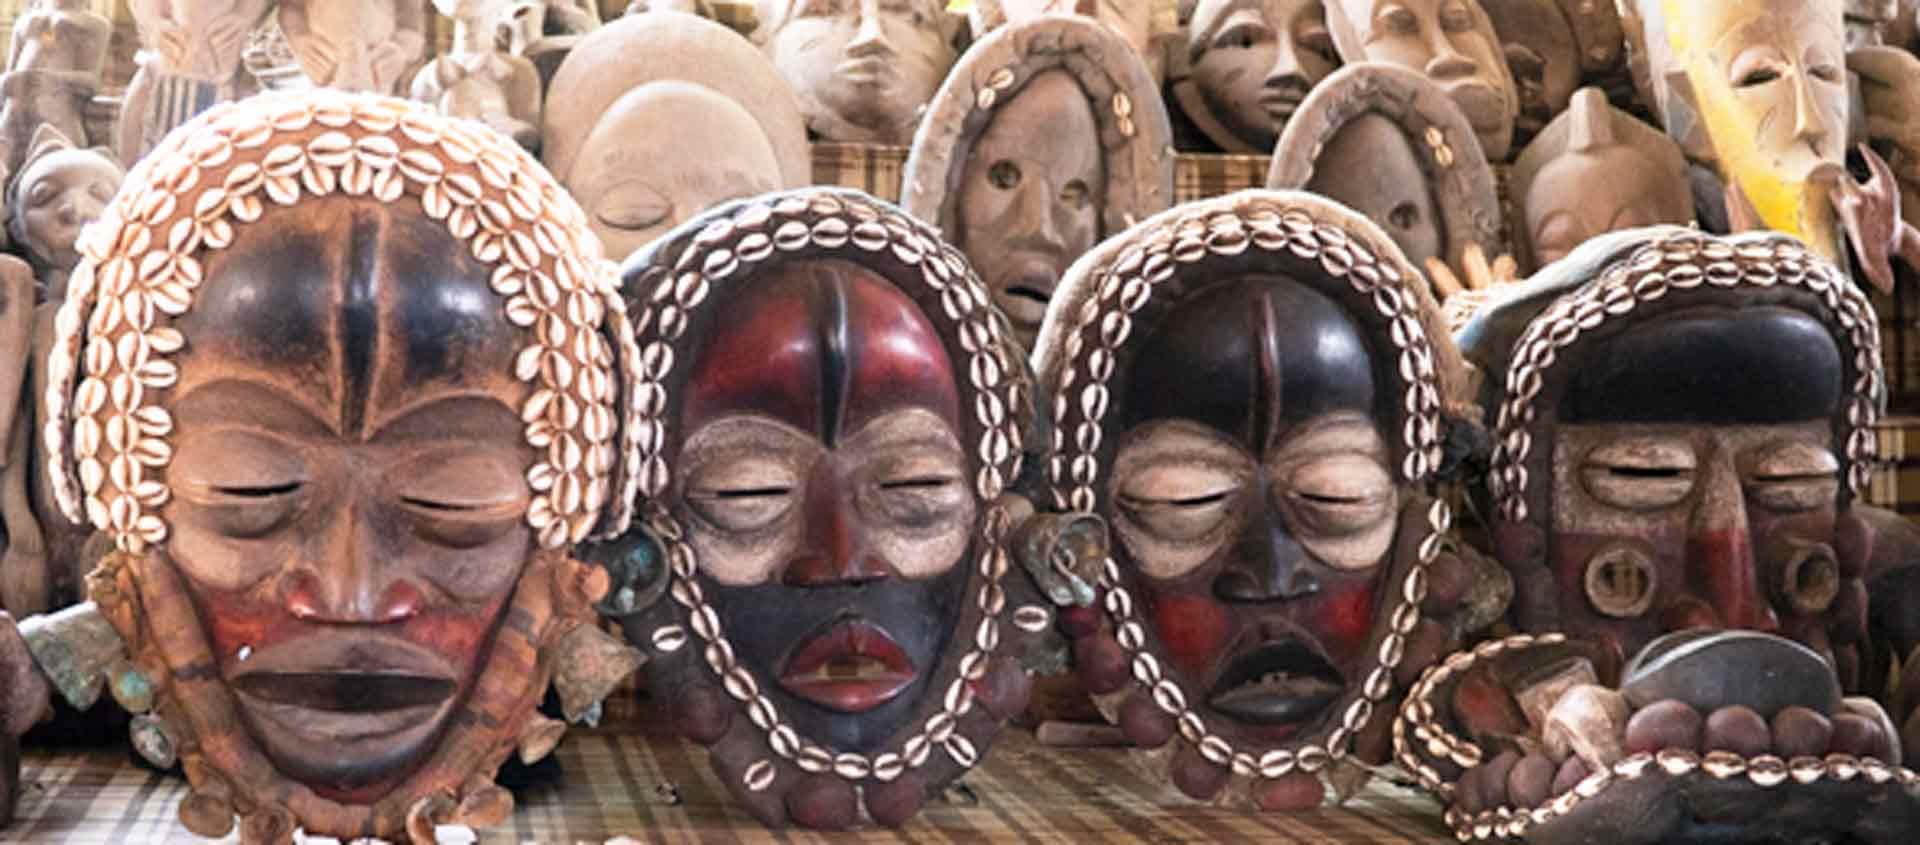 West Africa cruise image of masks at museum in Abidjan, Ivory Coast